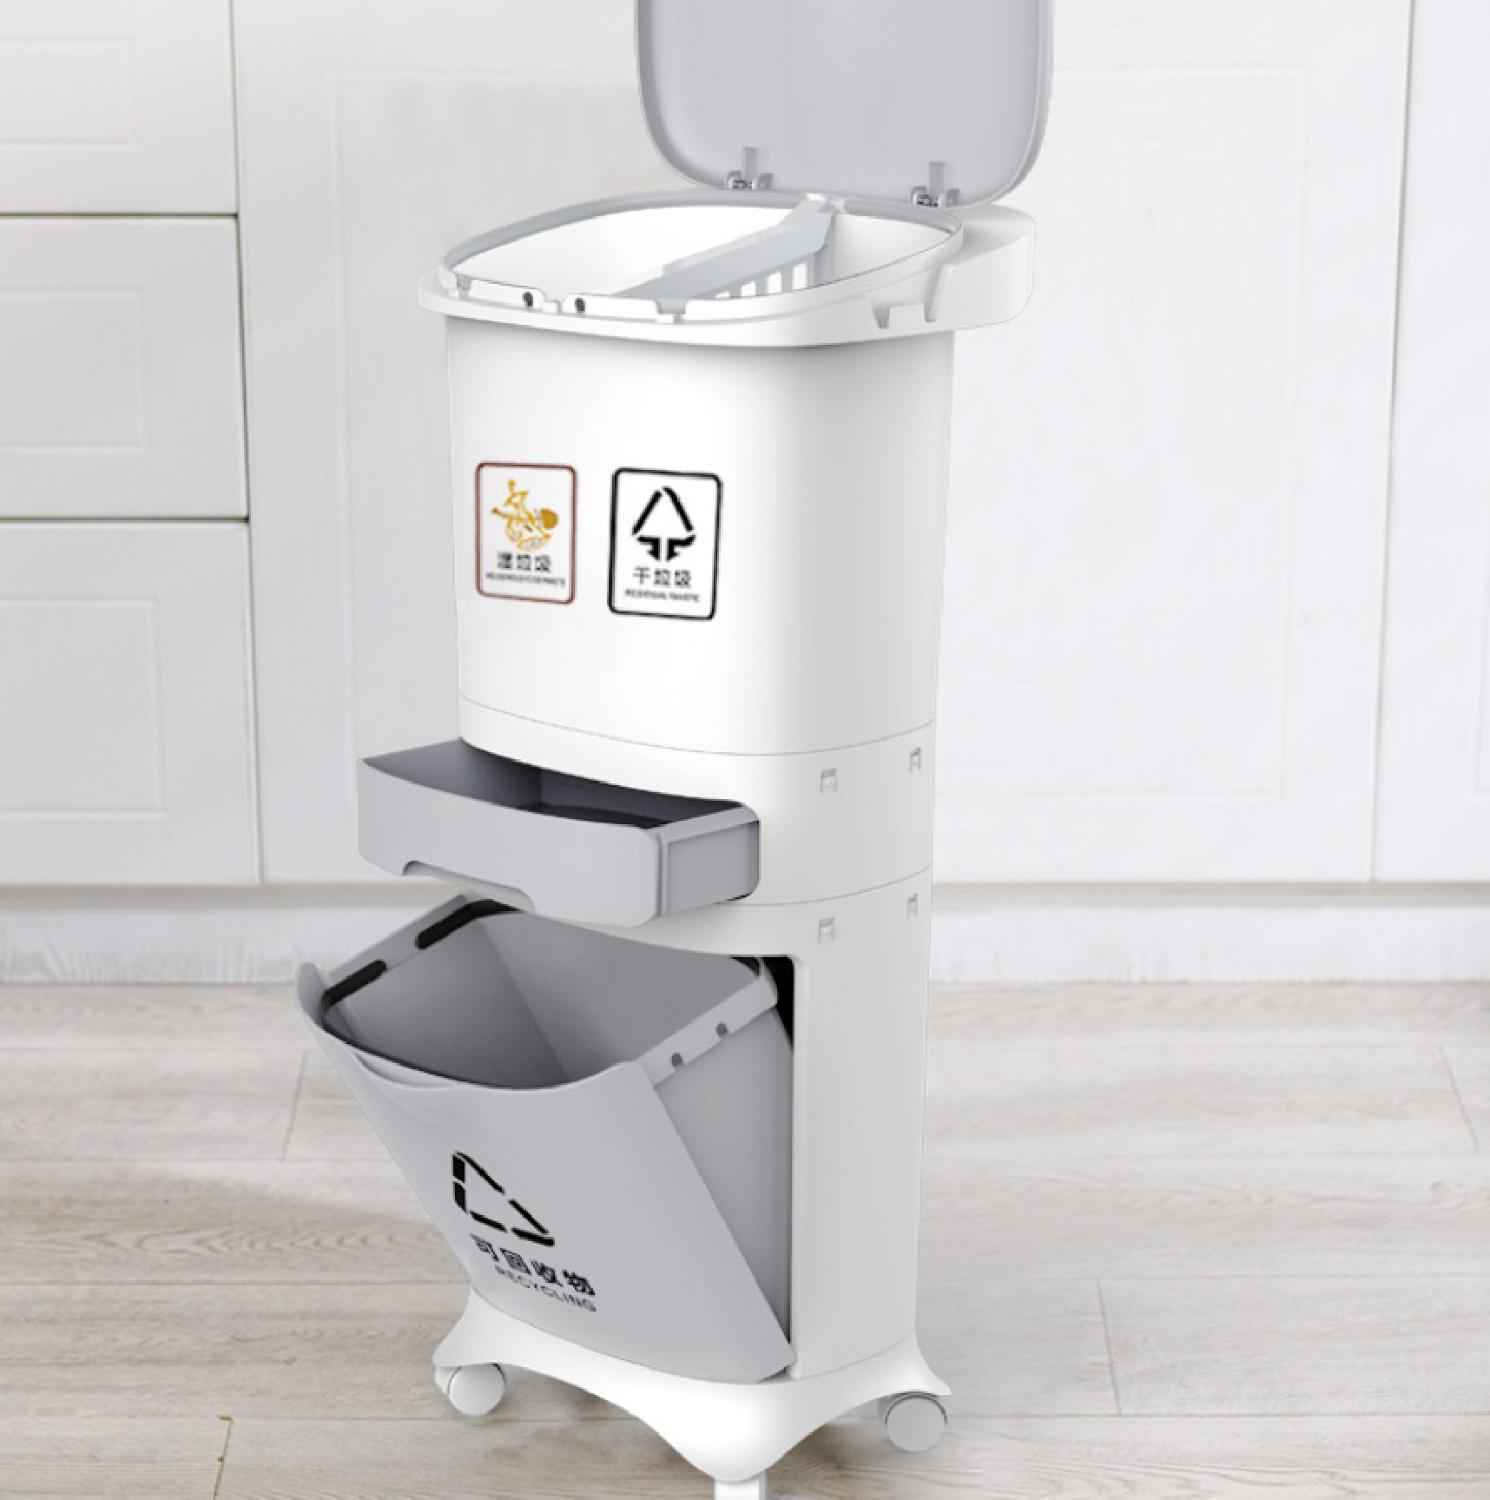 2/3 Layer Classification Trash Can Kitchen Plastic Dustbin Wet and Dry Push Button Recycle Stacked Sorting Rubbish BinWith Wheel|Waste Bins| |  - title=